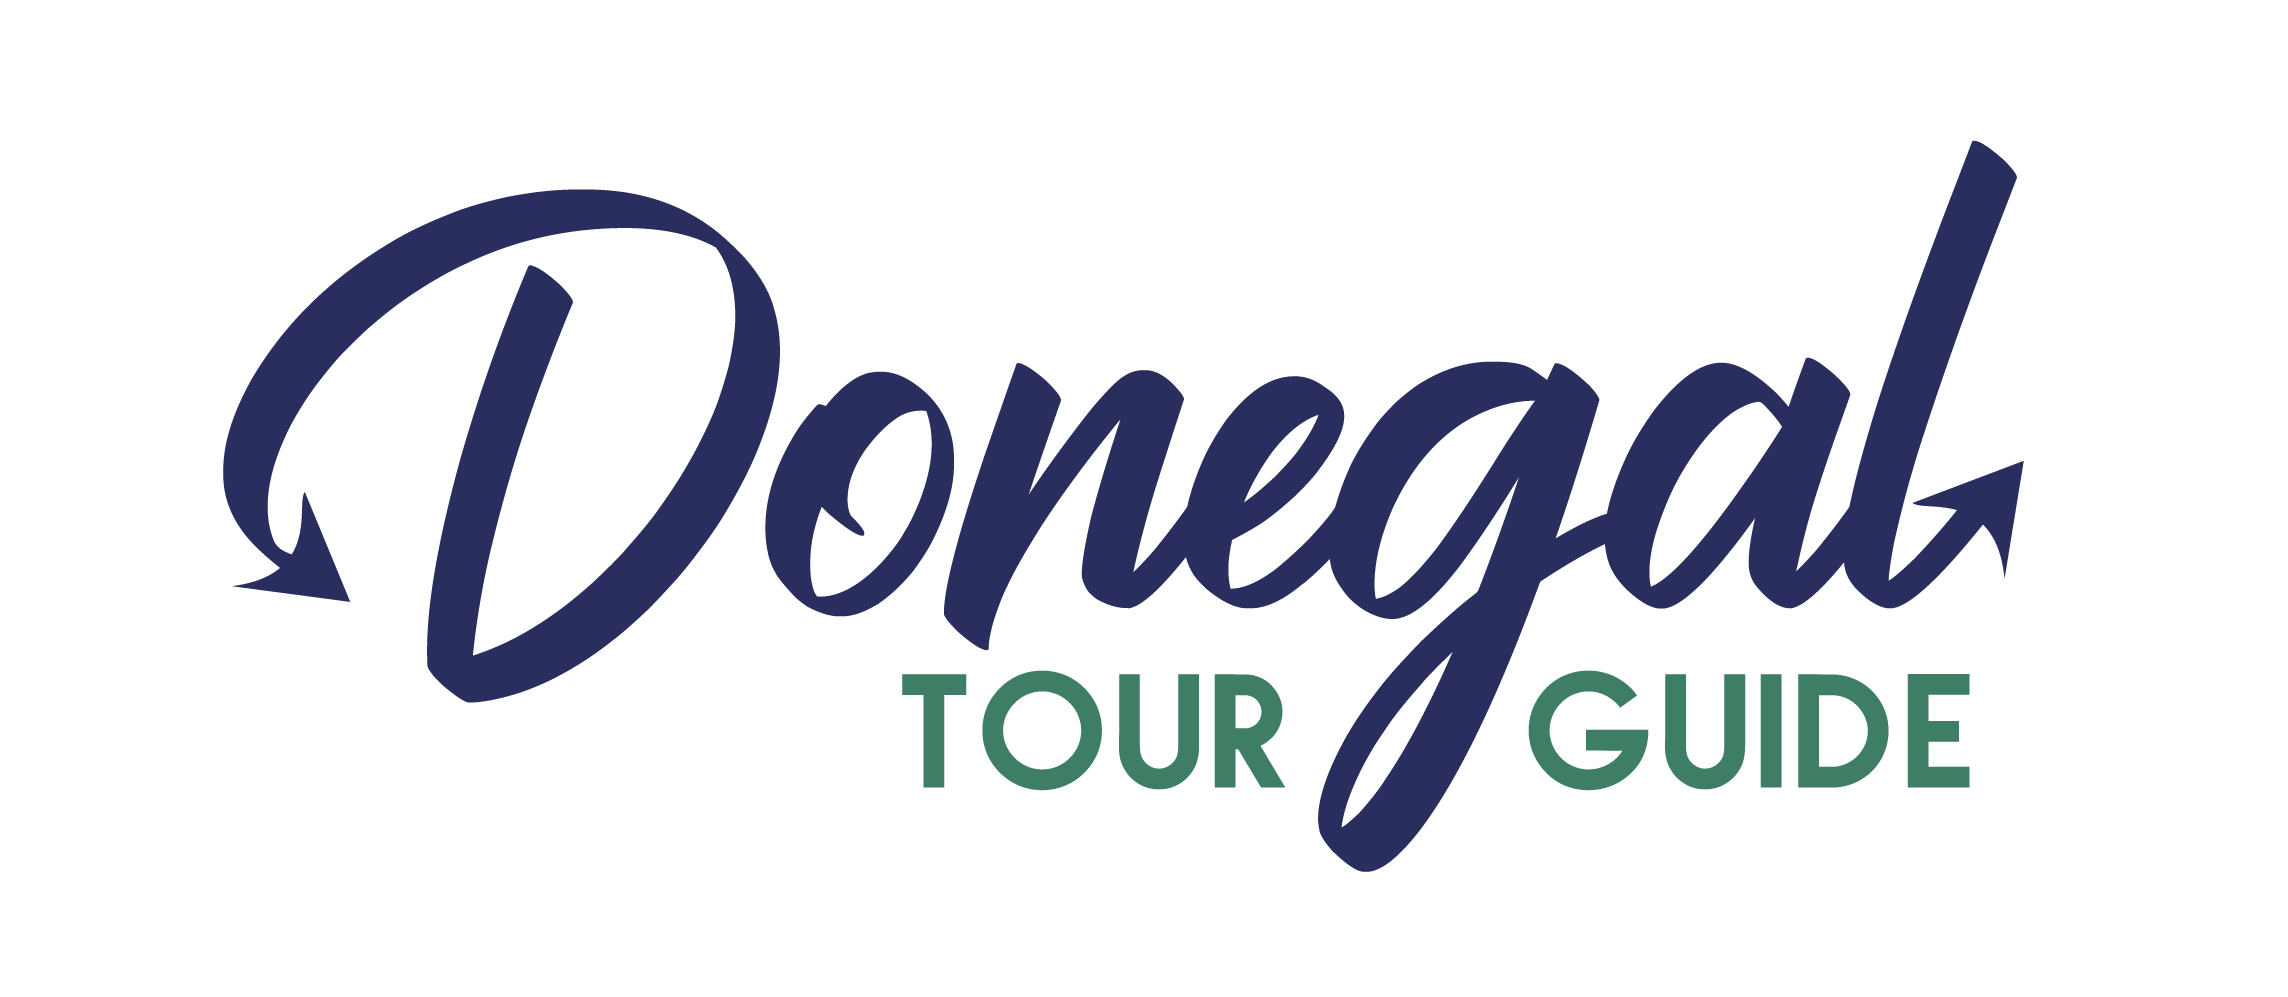 Donegal Tour Guide